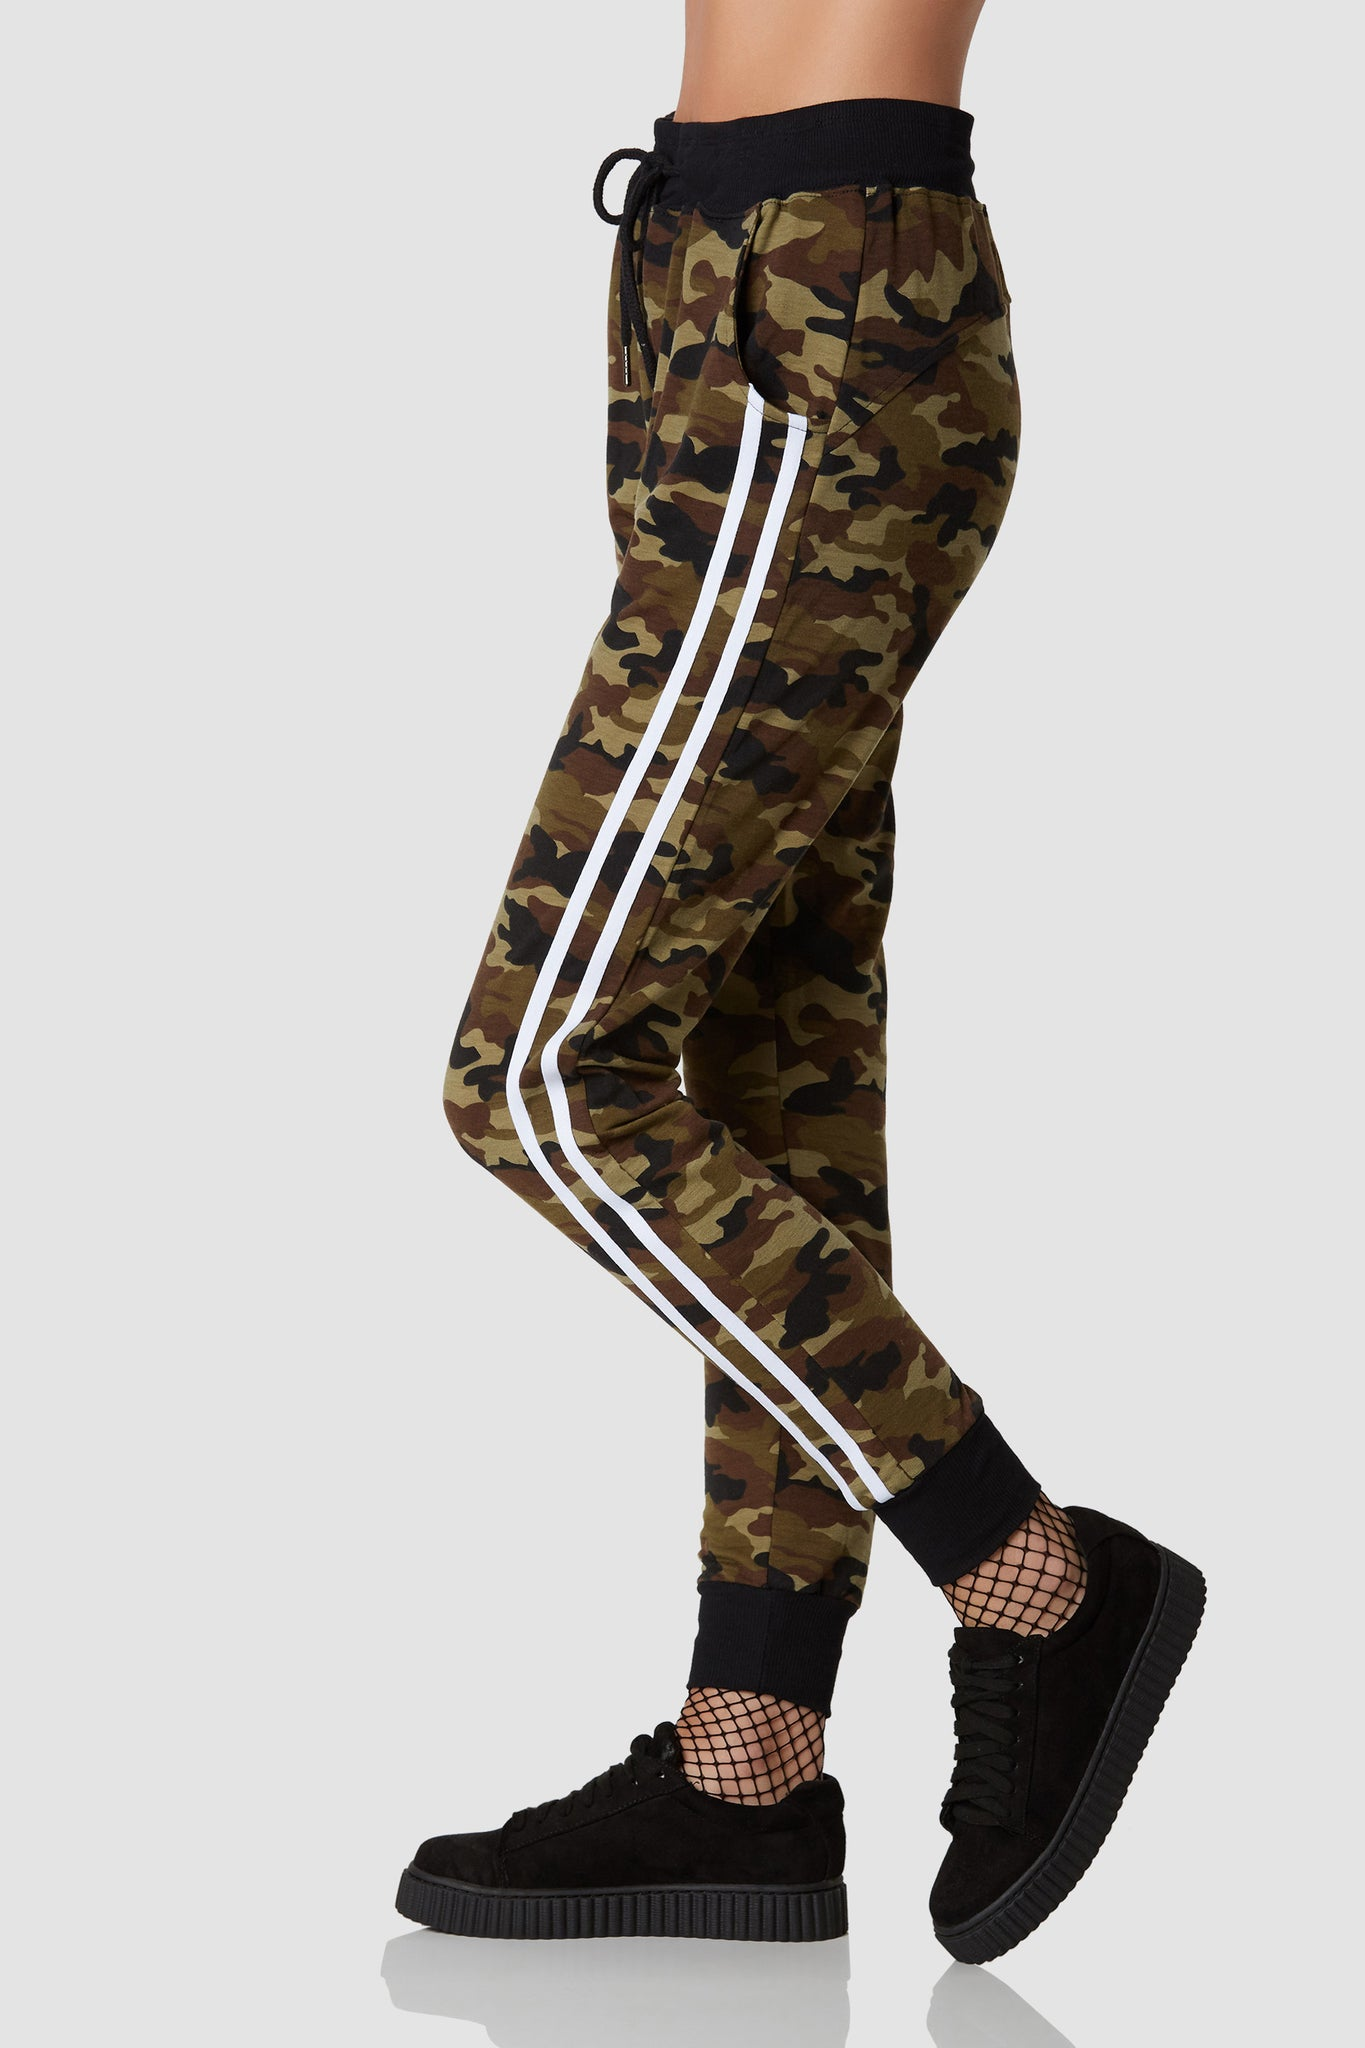 Casual high rise printed joggers with camo print throughout. Drawstring waistband with side pockets and trendy contrast stripes down each side.